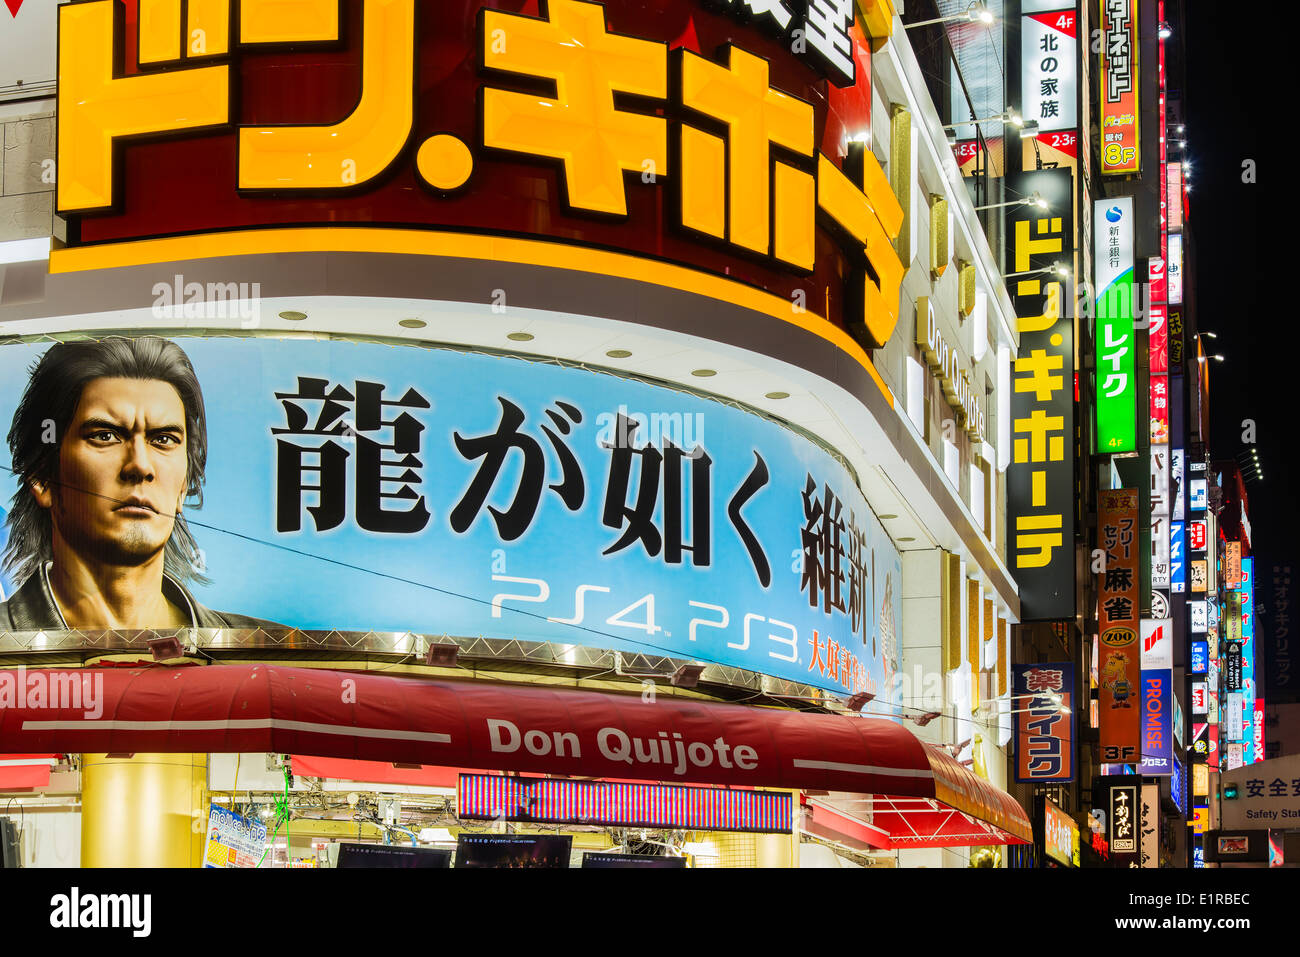 Colorful neon lights along Yasukuni-dori street, Shinjuku district, Tokyo, Japan - Stock Image